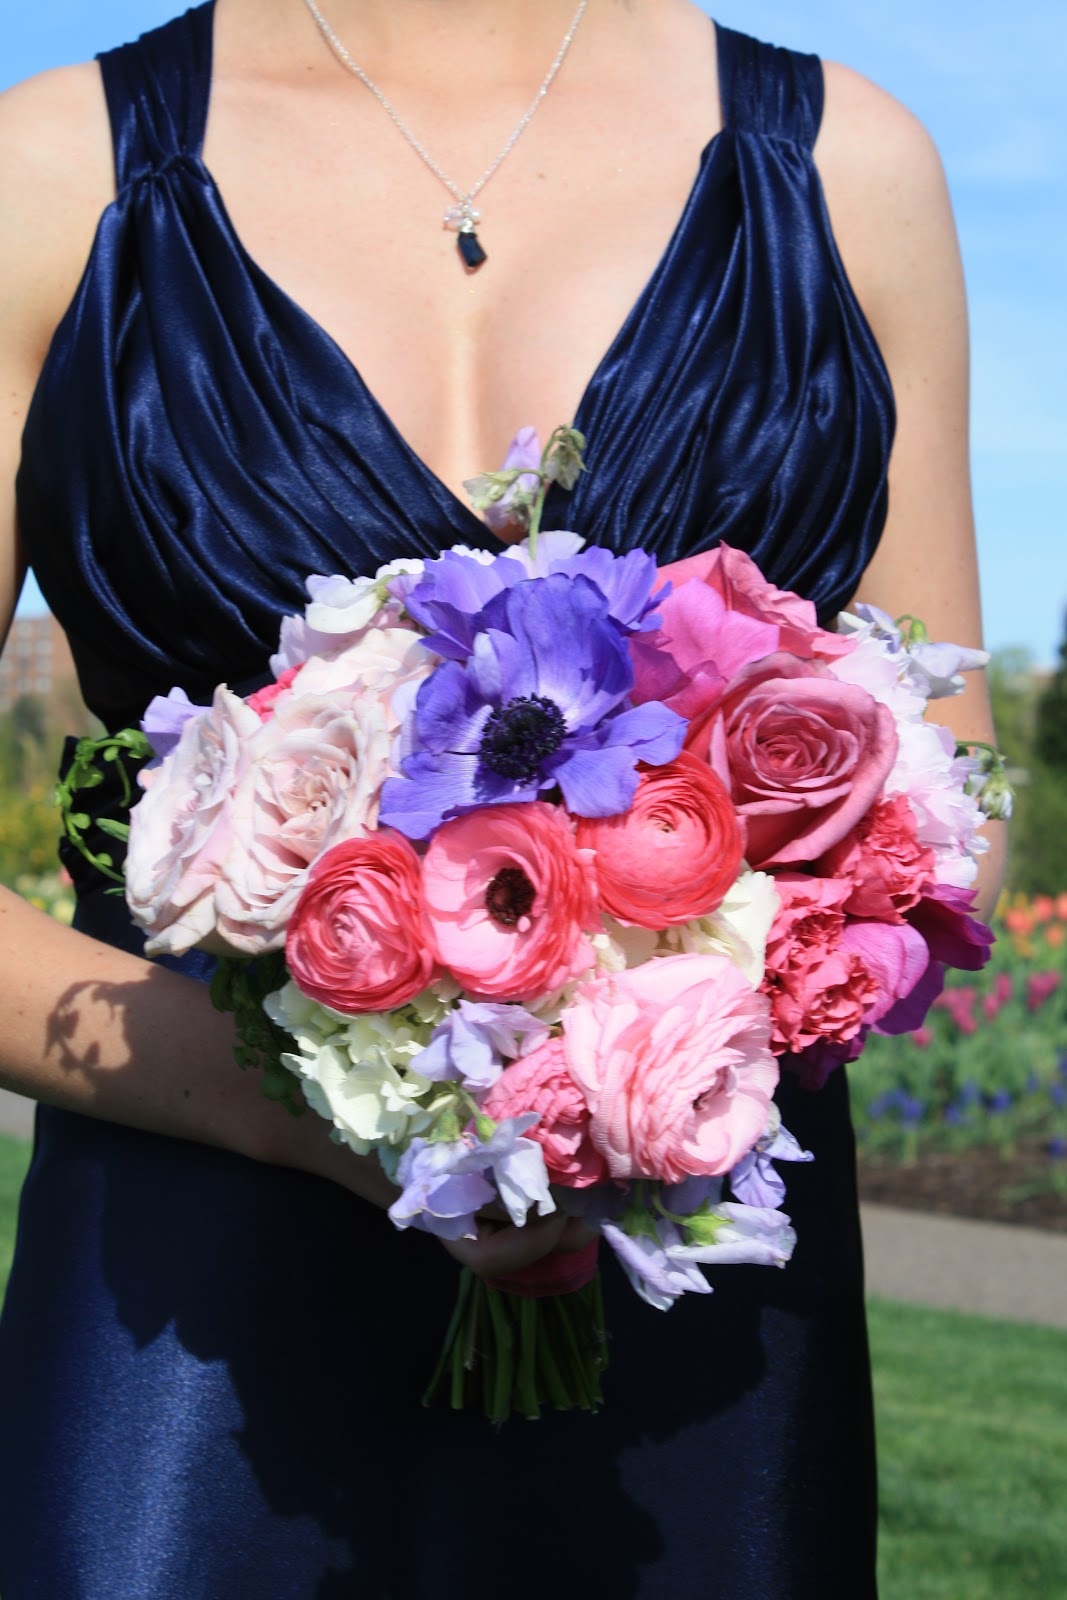 Garden roses, peonies, anemones, sweetpeas, ranunculus bouquet, Rose Bridal Bouquet, Rose Bouquet, Wedding Bouquet, Splendid Stems Wedding Flowers